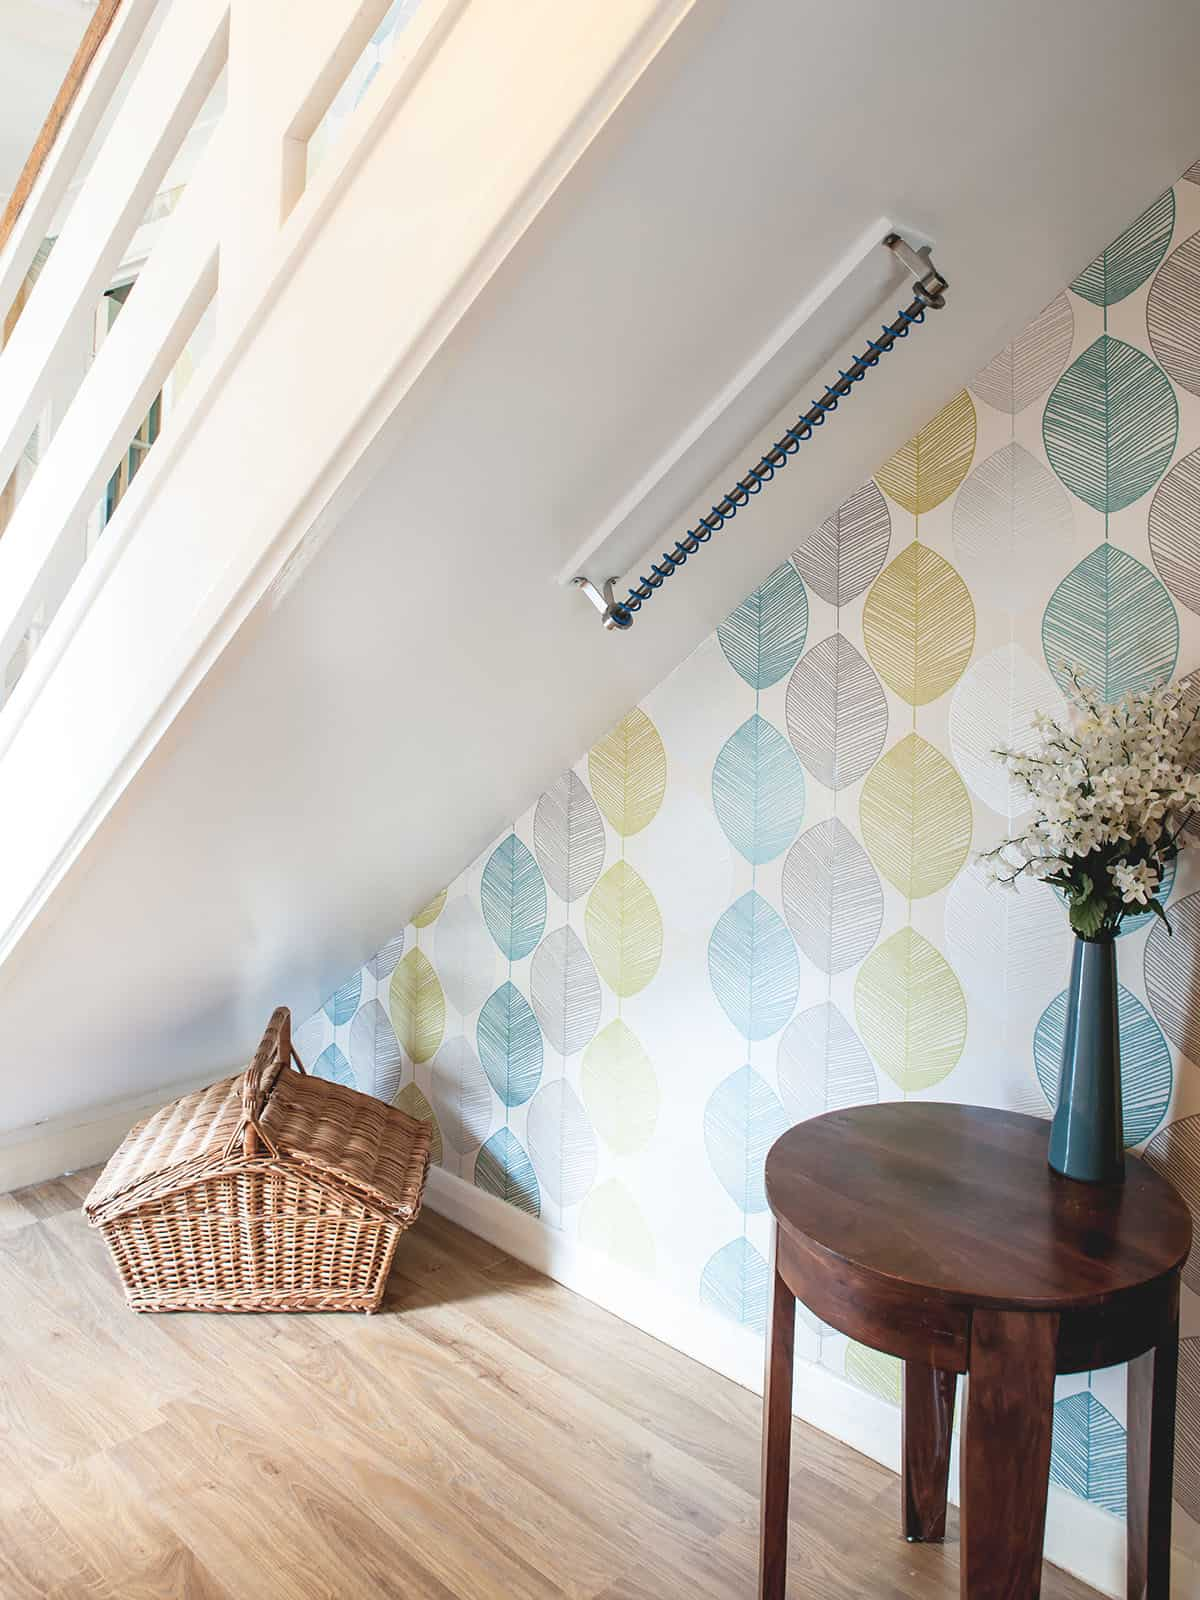 Zebedee Any Angle Hanging Rail - Primary Blue - Shown on angled / sloped ceiling